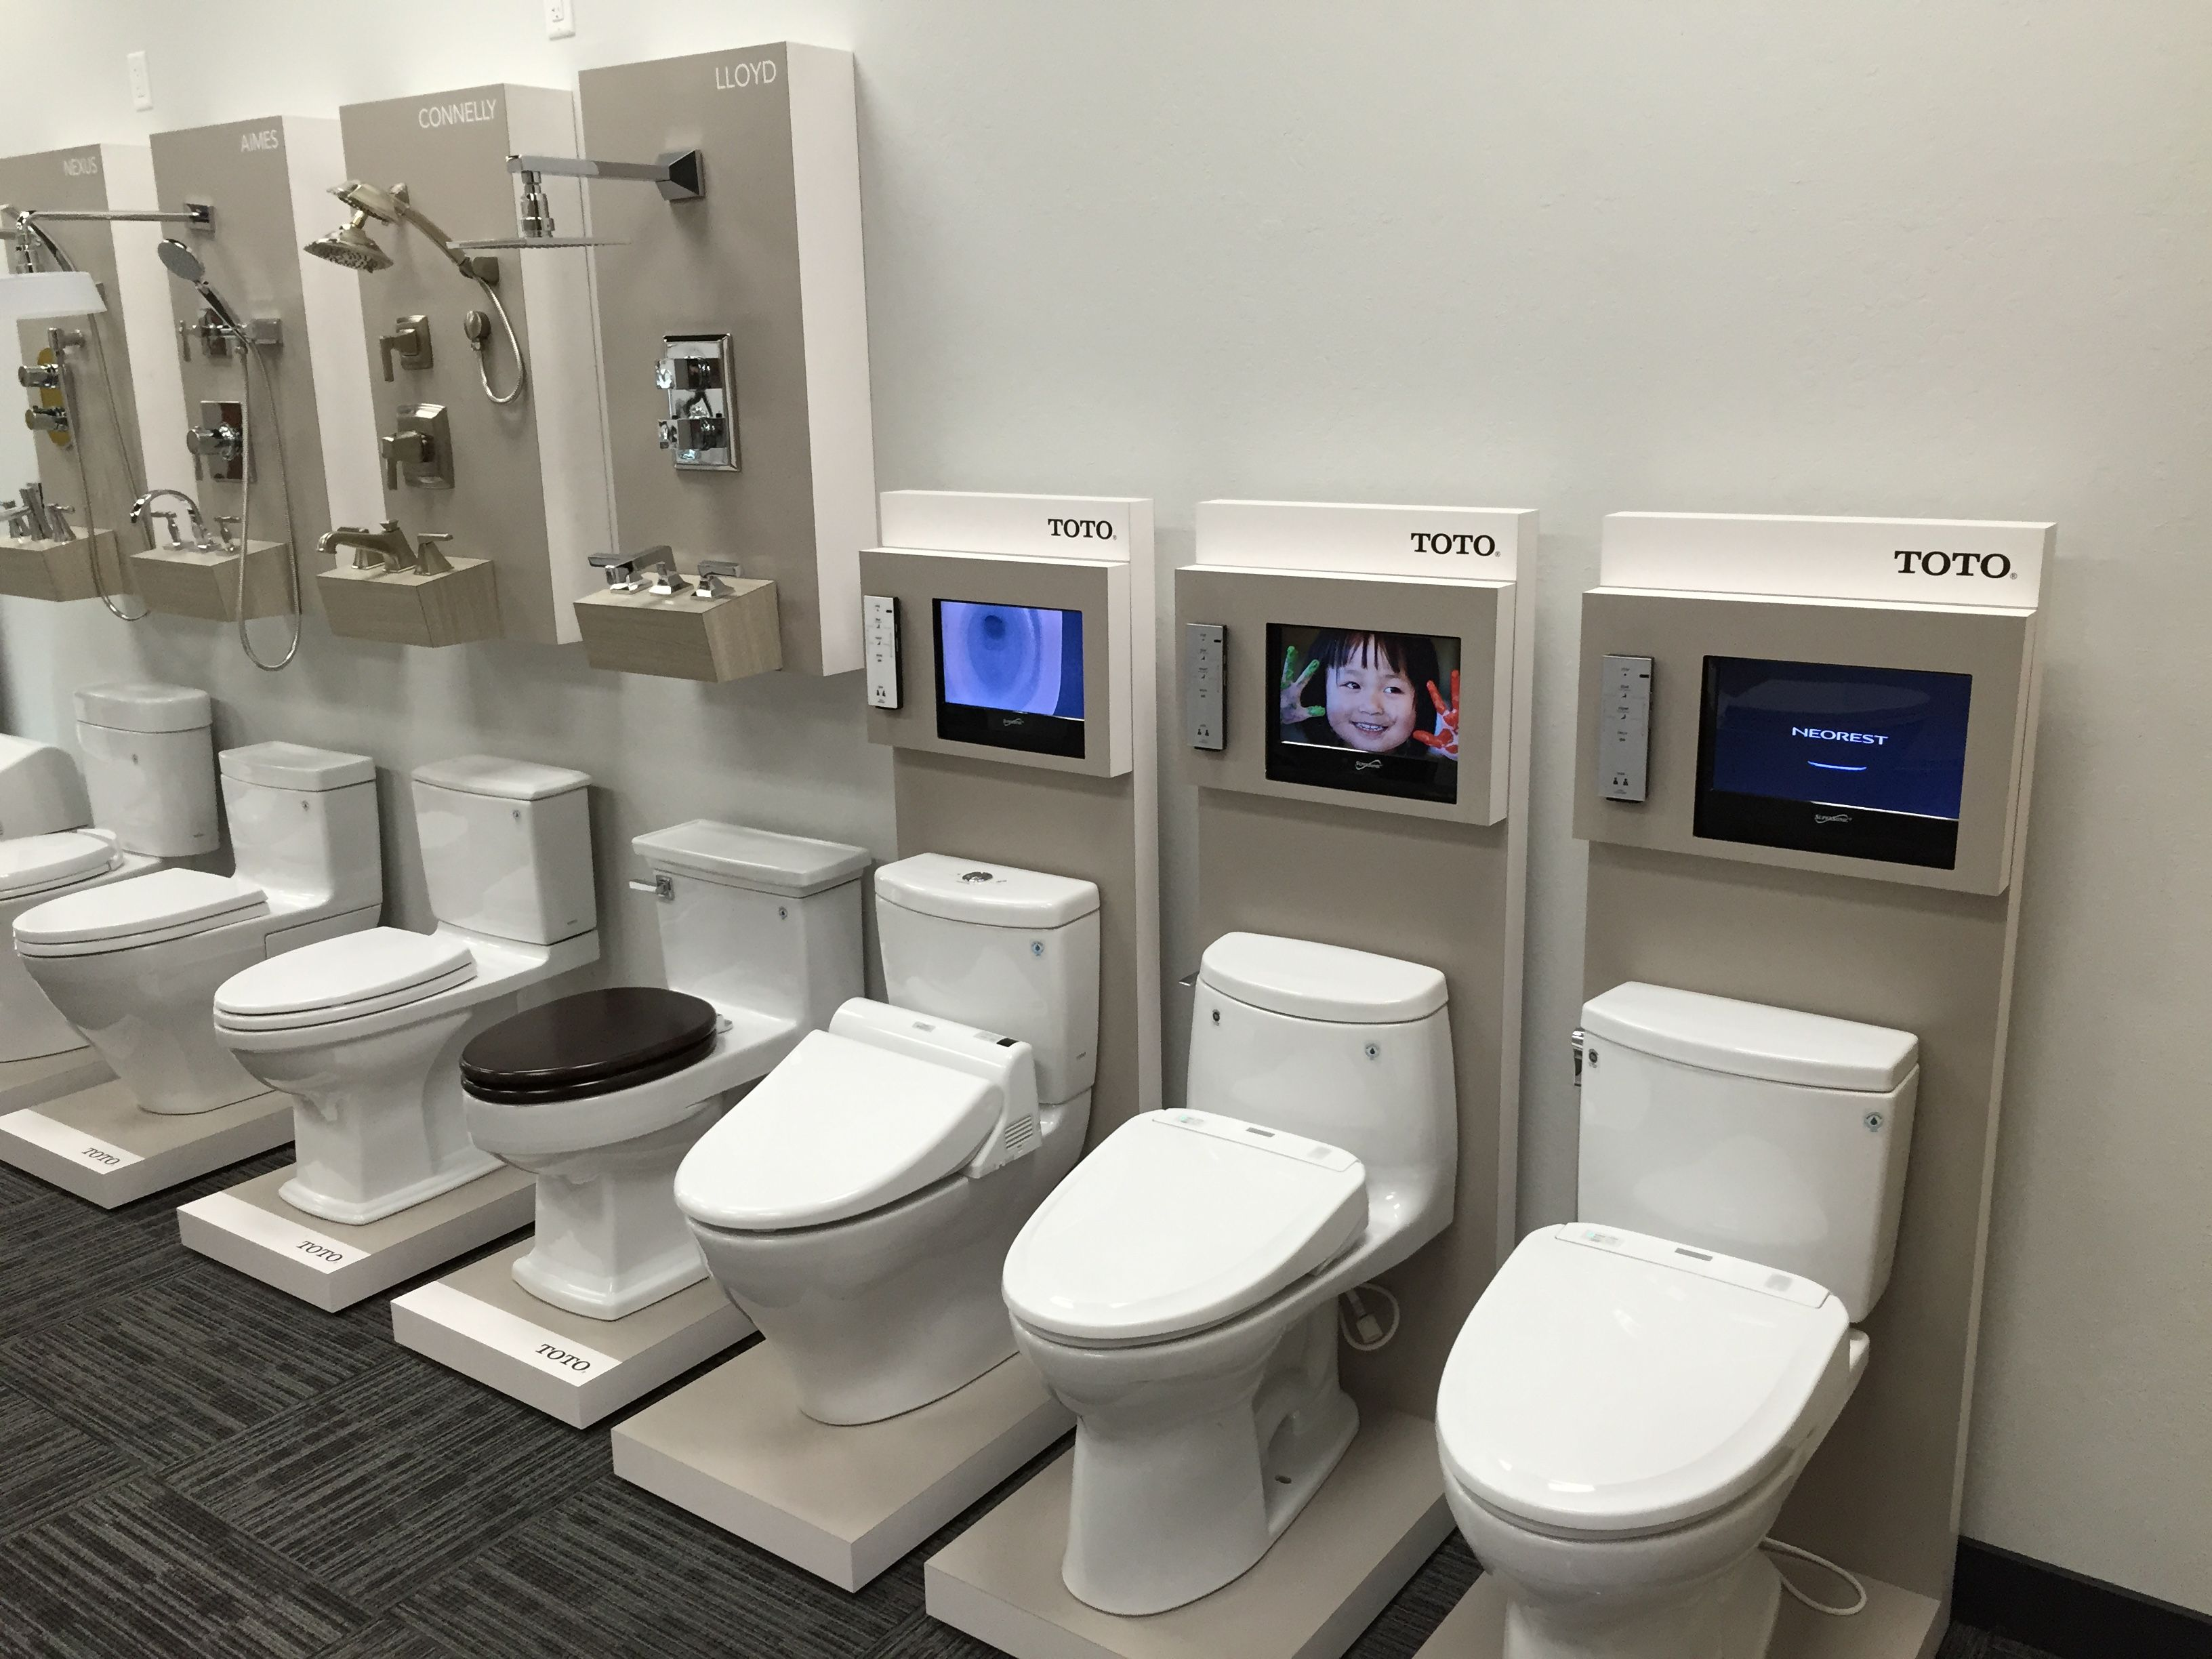 Toilet Display | The New Showroom | Pinterest | Showroom, Toilet and ...